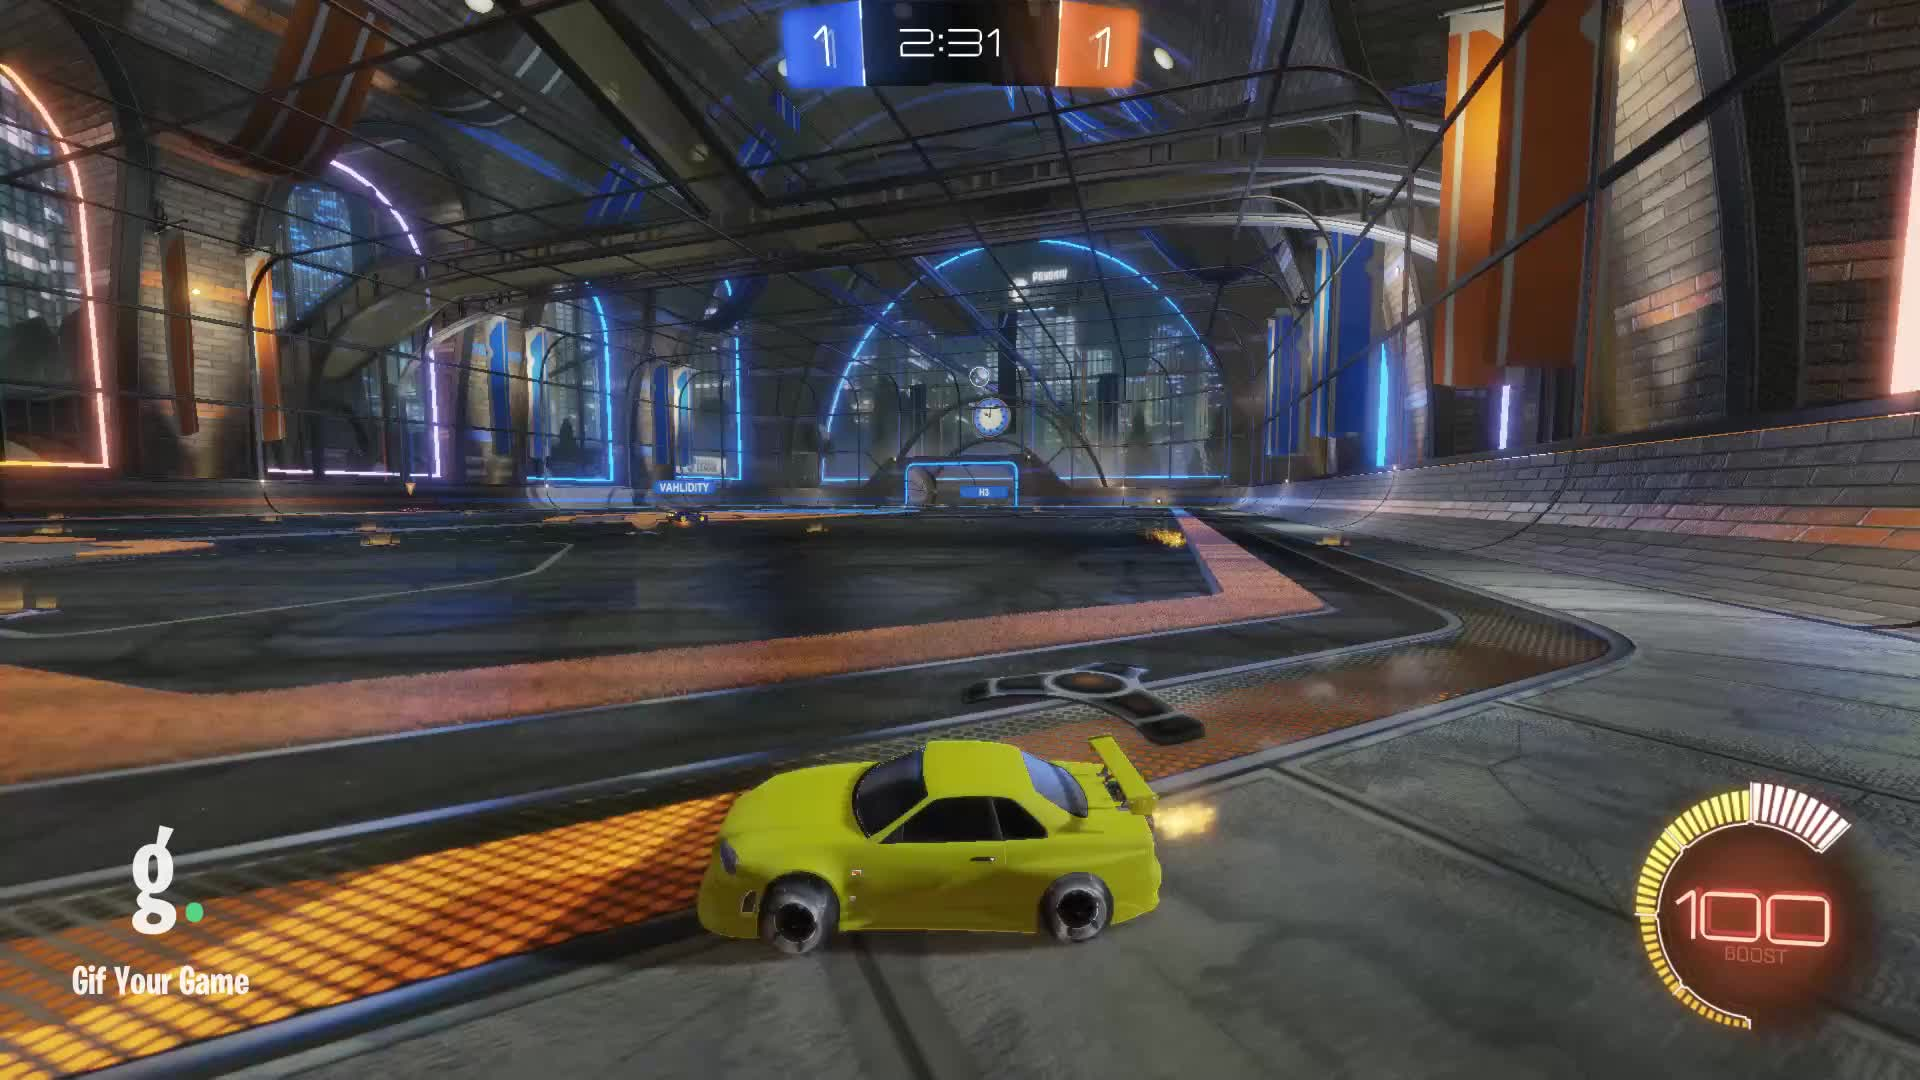 Gif Your Game, GifYourGame, Goal, Rocket League, RocketLeague, Sinnicole, Goal 3: Sinnicole GIFs